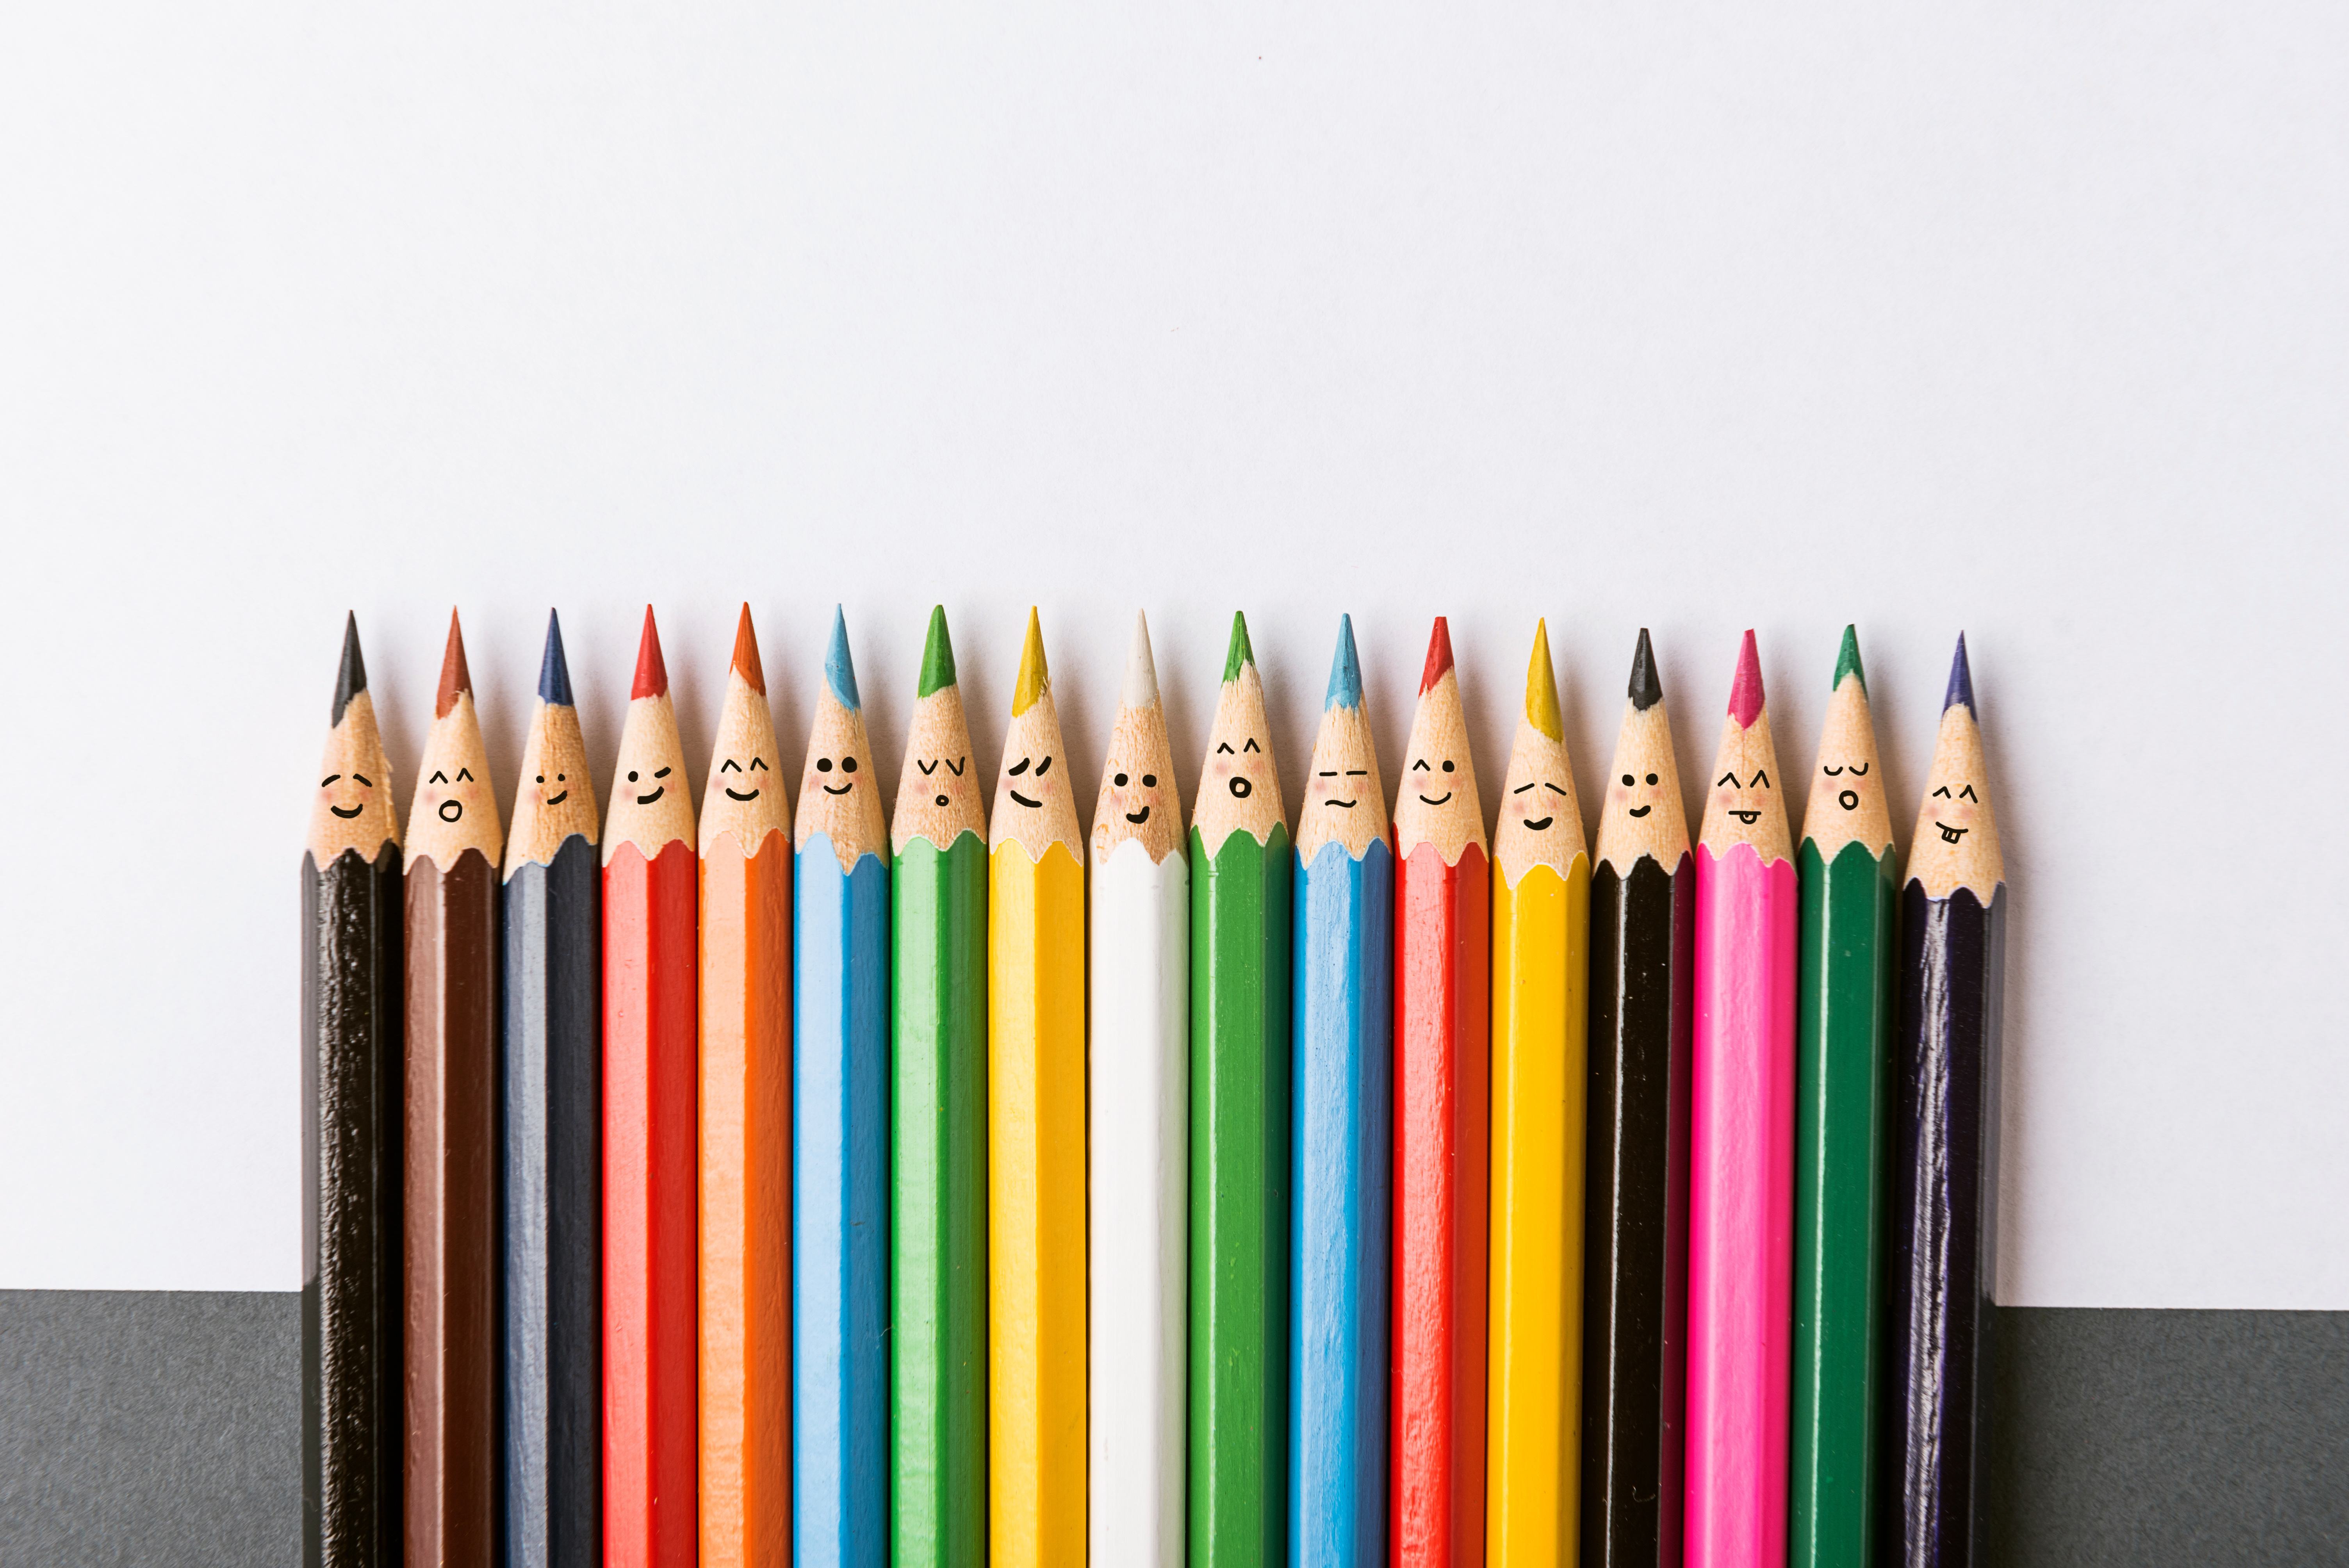 Color pencils with faces painted on them. the concept of a multinational family and equality in the world.